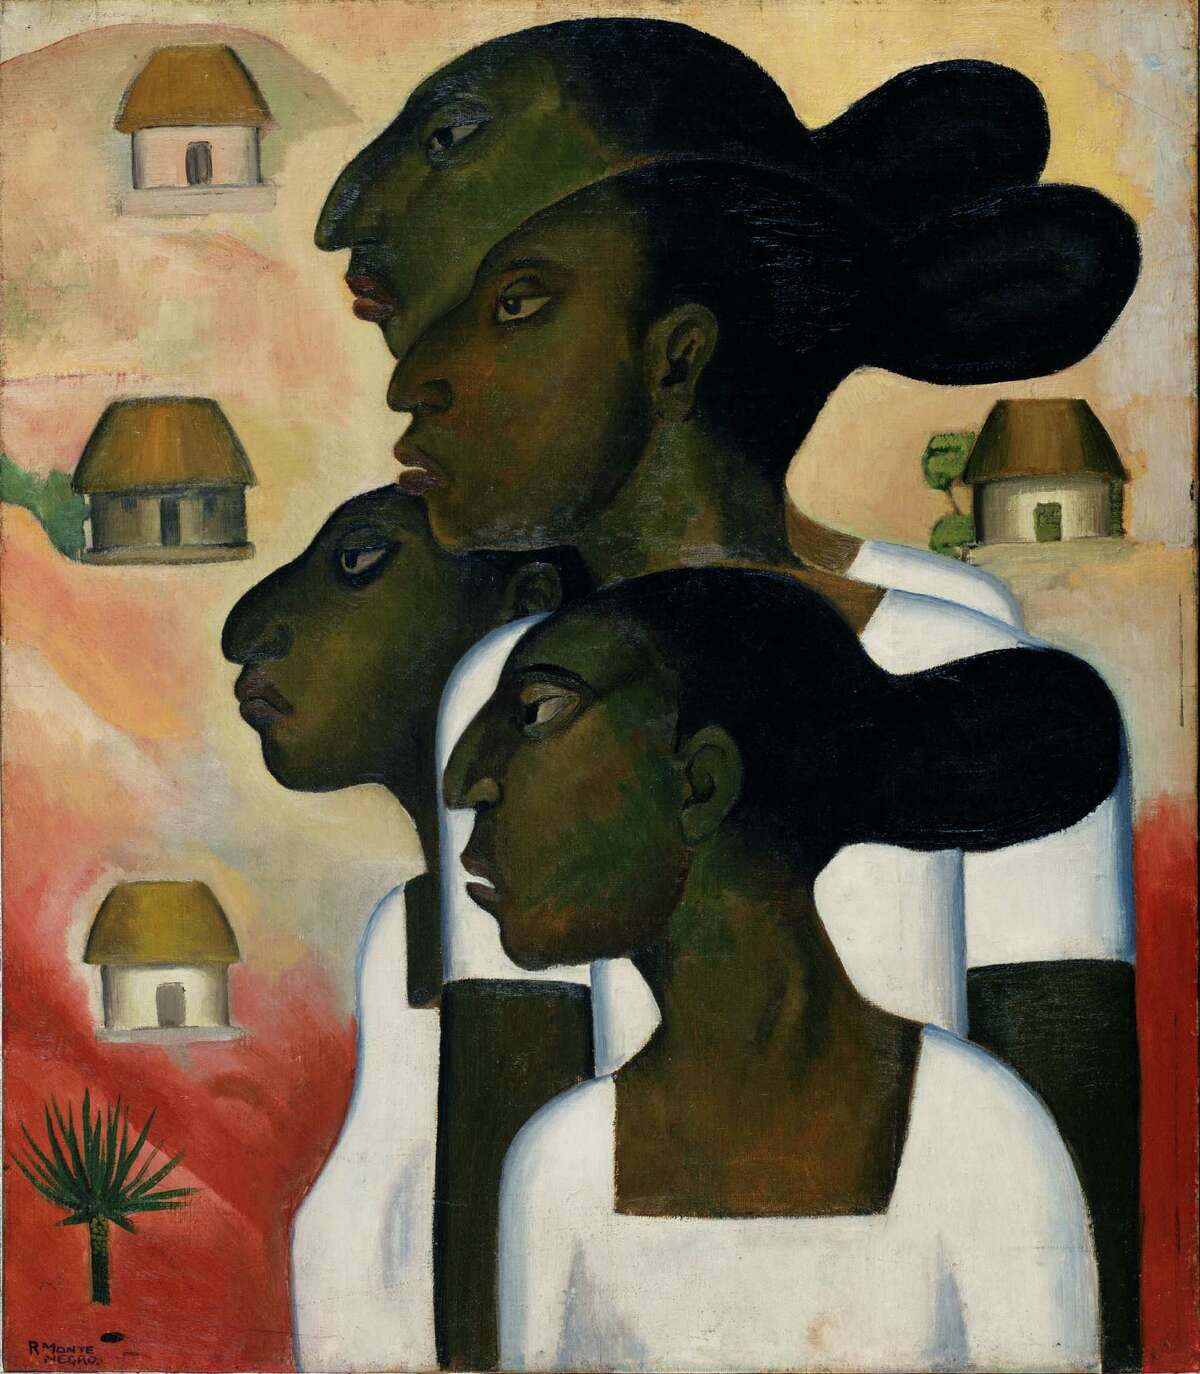 Montenegro, Roberto (1885-1968): Maya Women, 1926. New York, Museum of Modern Art (MoMA) Oil on canvas, 31 1/2 x 27 1/2 (80 x 69.8 cm). Gift of Nelson A. Rockefeller. Acc. n.: 560.1941.*** Permission for usage must be provided in writing from Scala. May have restrictions - please contact Scala for details. ***